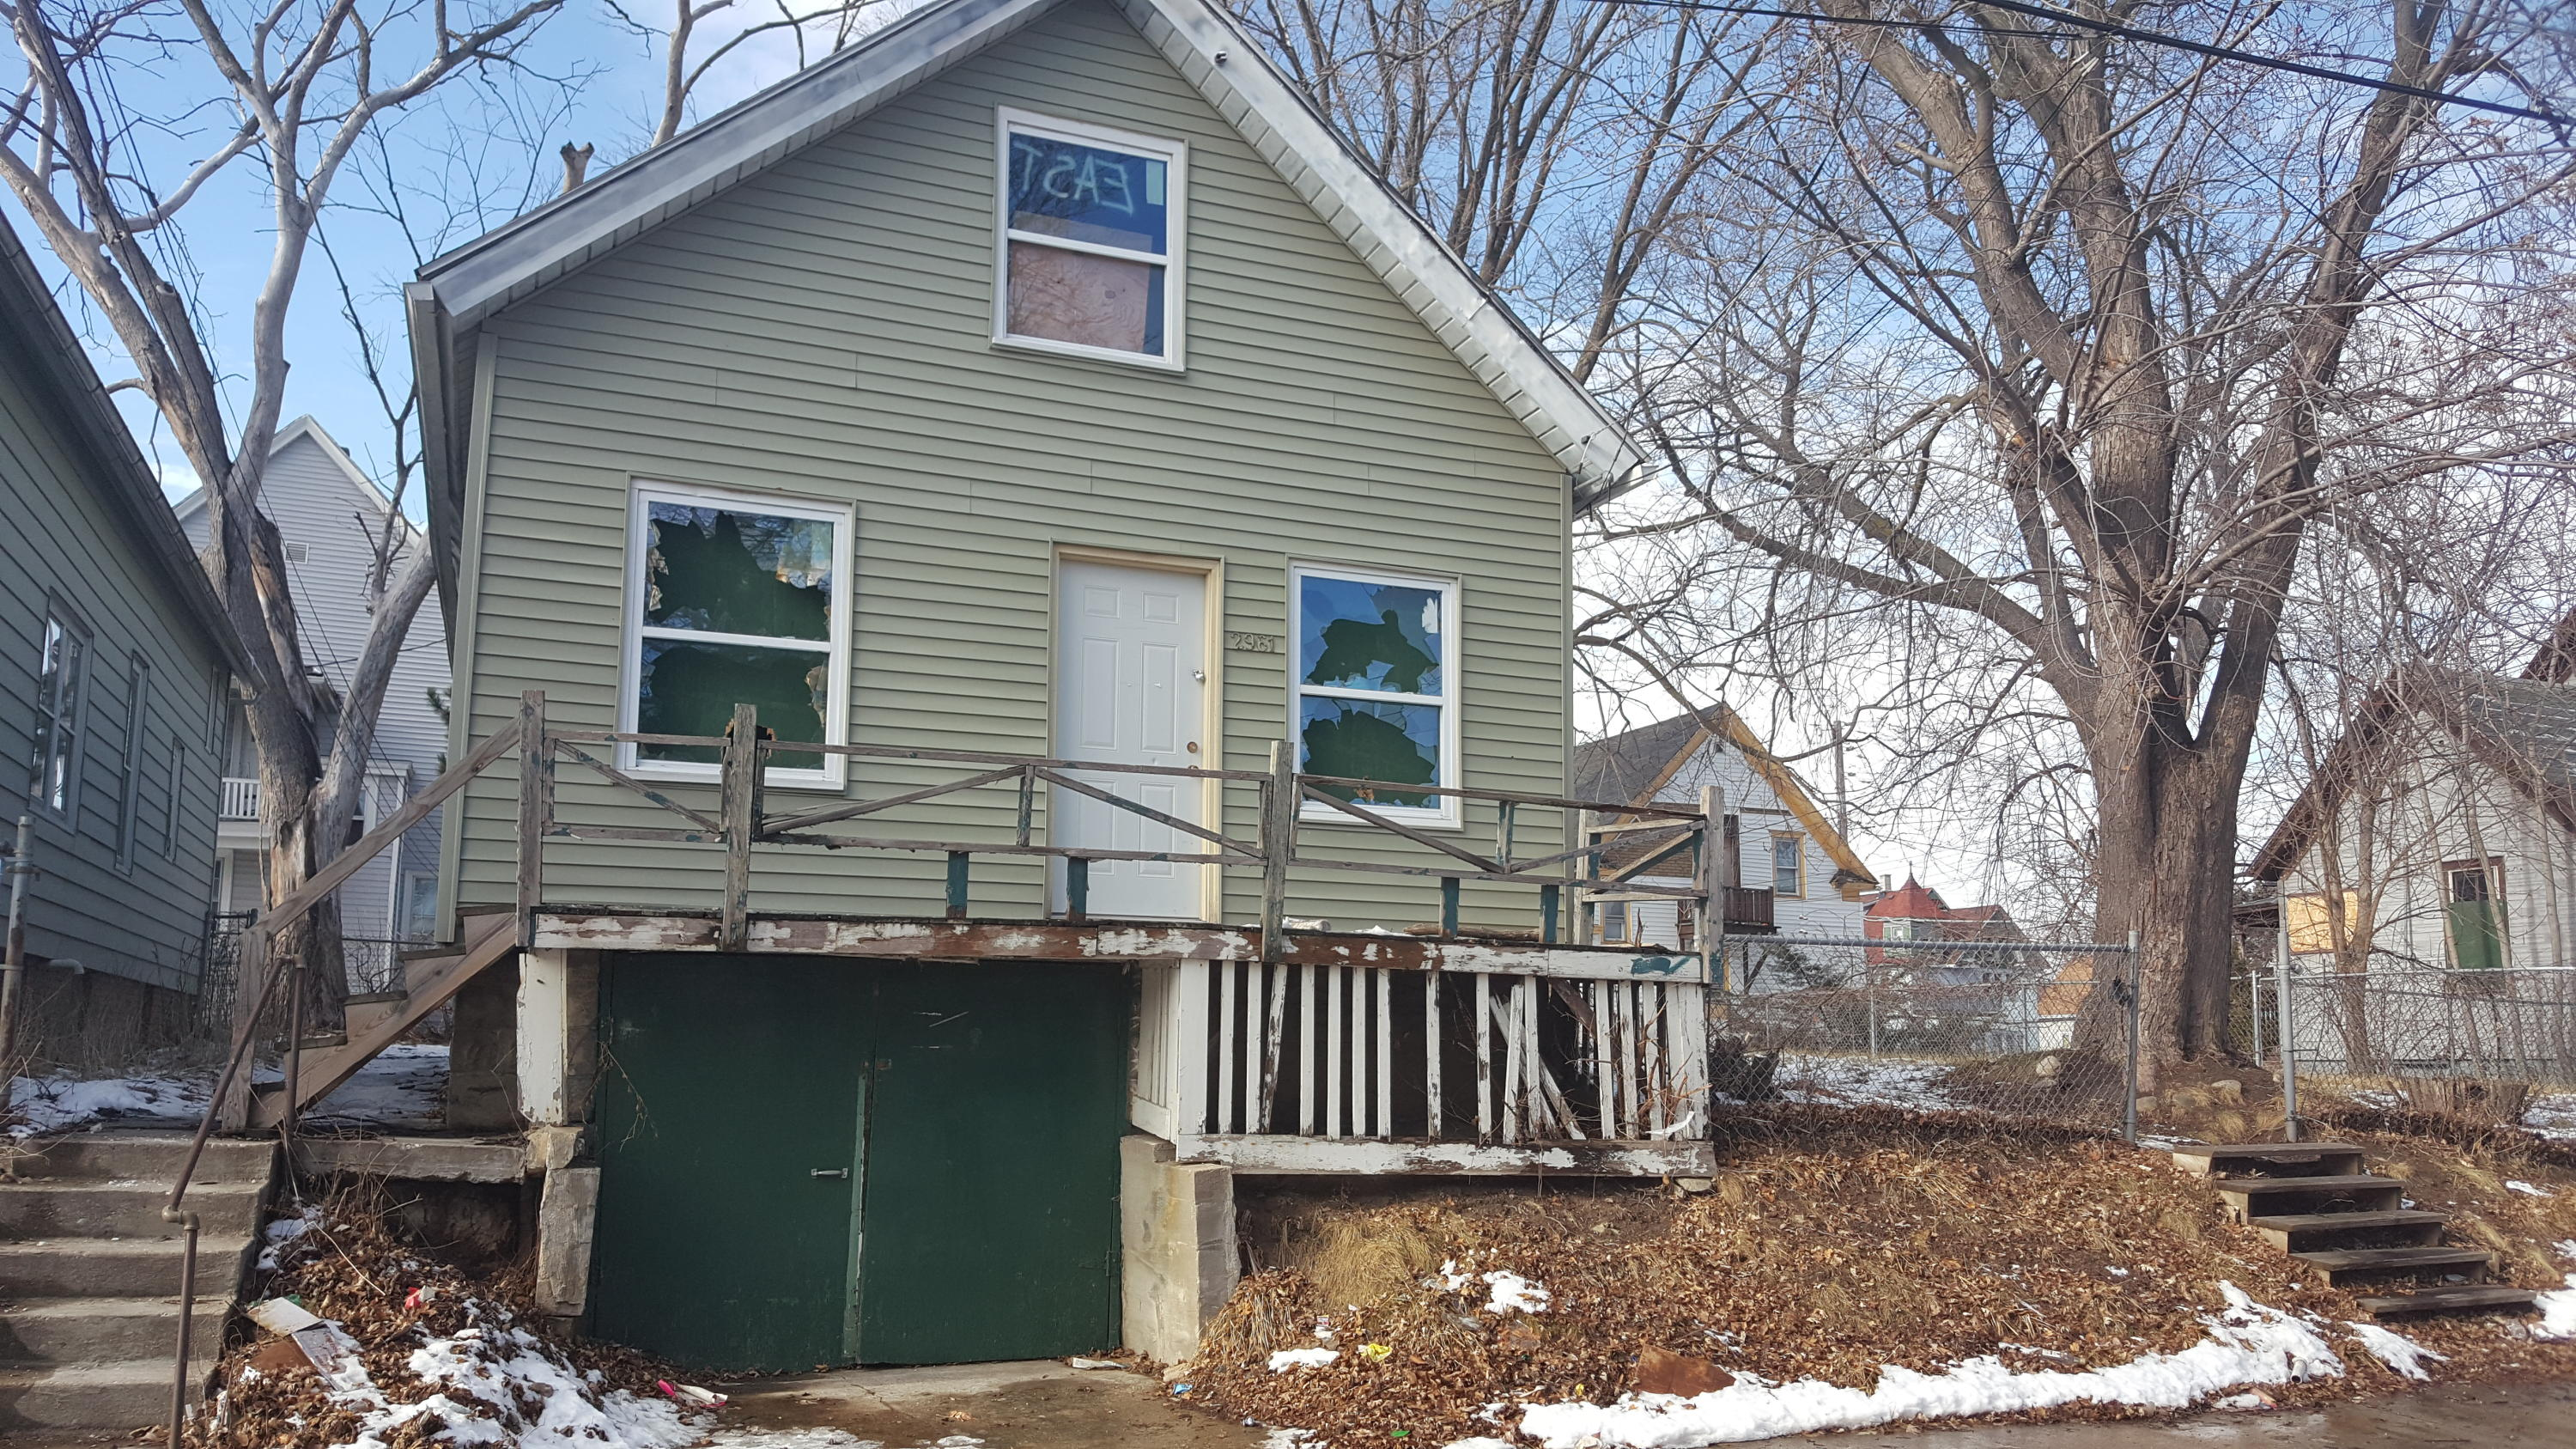 2961 11th LN, Milwaukee, Wisconsin 53206, 3 Bedrooms Bedrooms, 5 Rooms Rooms,1 BathroomBathrooms,Single-Family,For Sale,11th LN,1564713